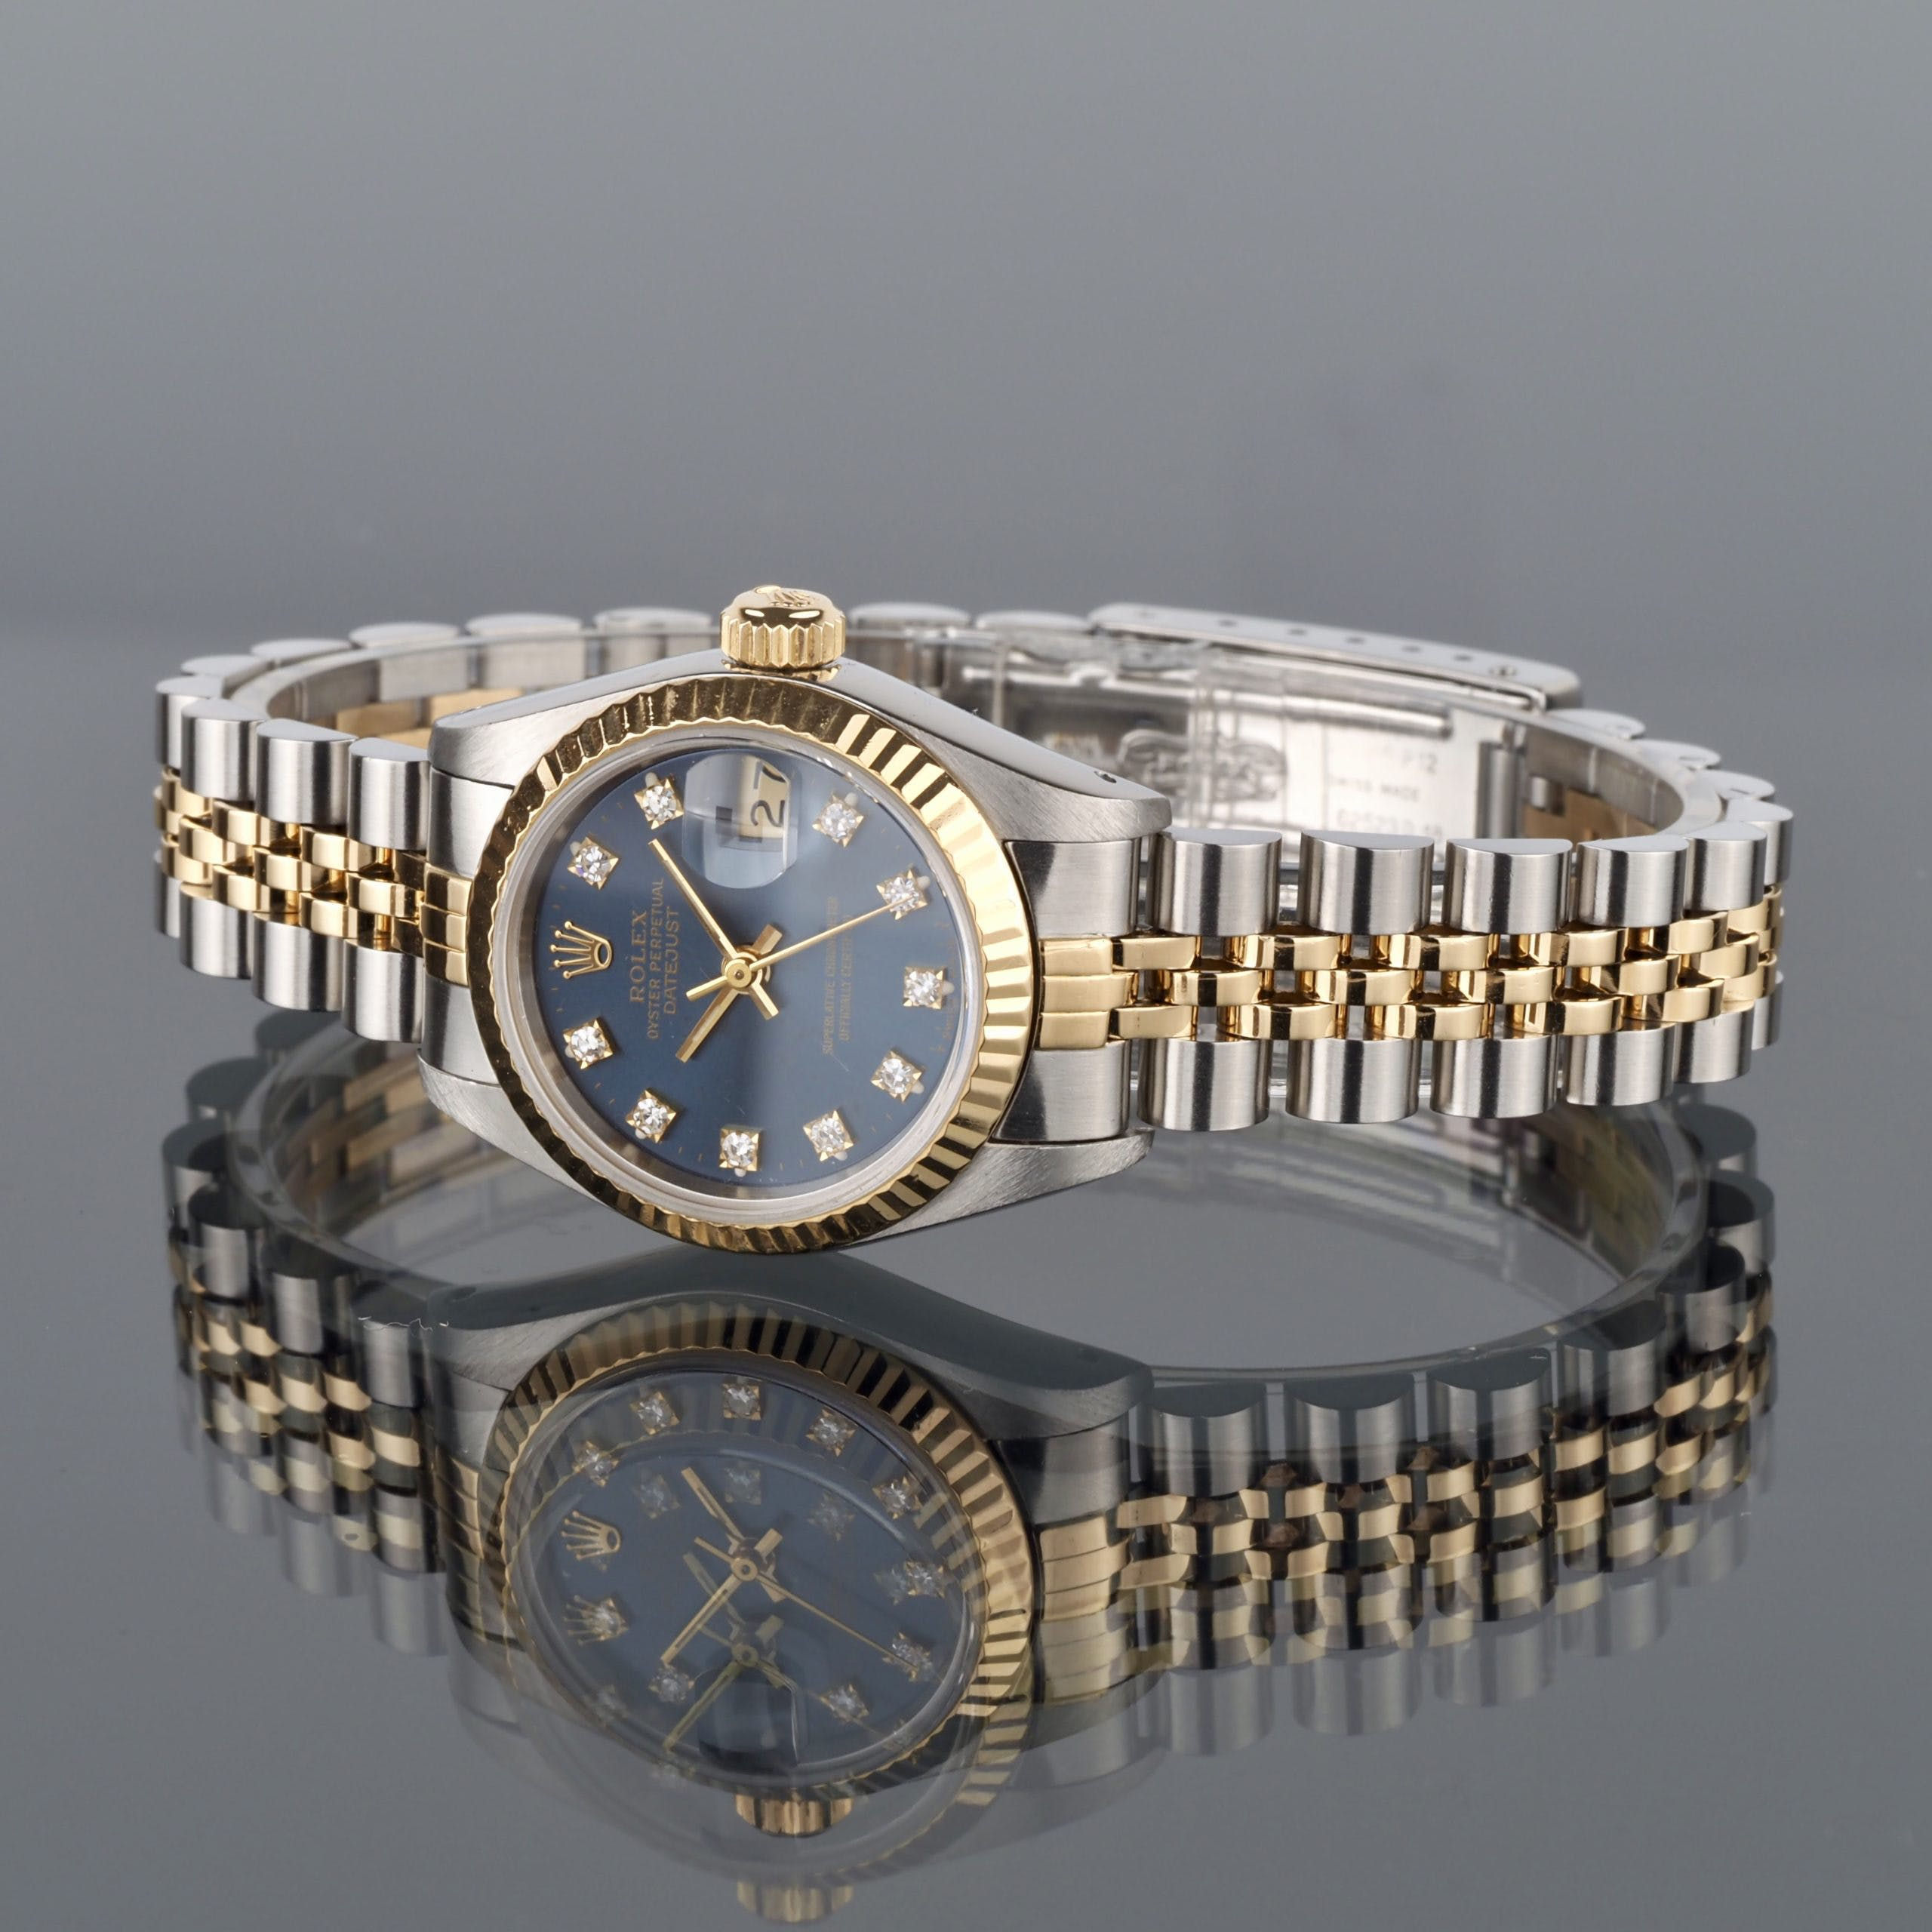 The Rolex Datejust is available in an assortment of colors, shapes, and sizes.